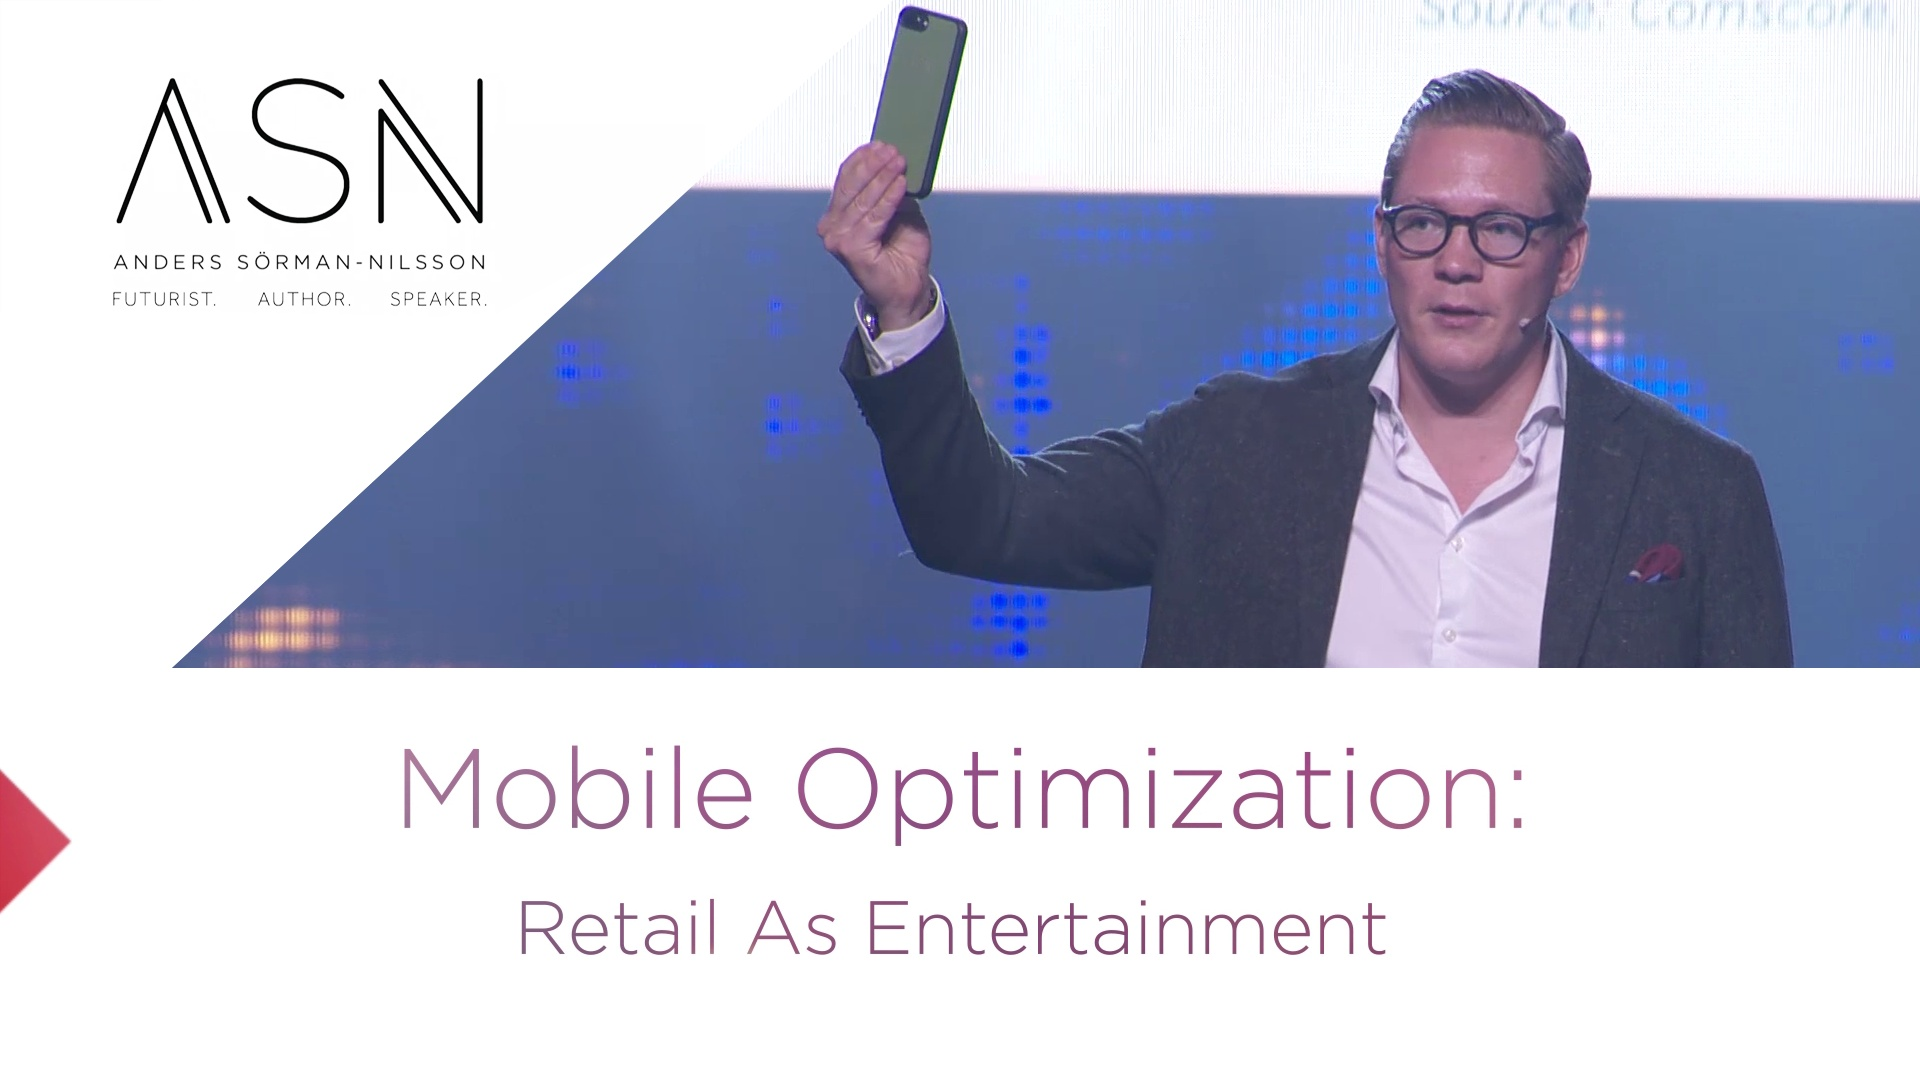 Mobile Optimization - Retail as Entertainment ASN